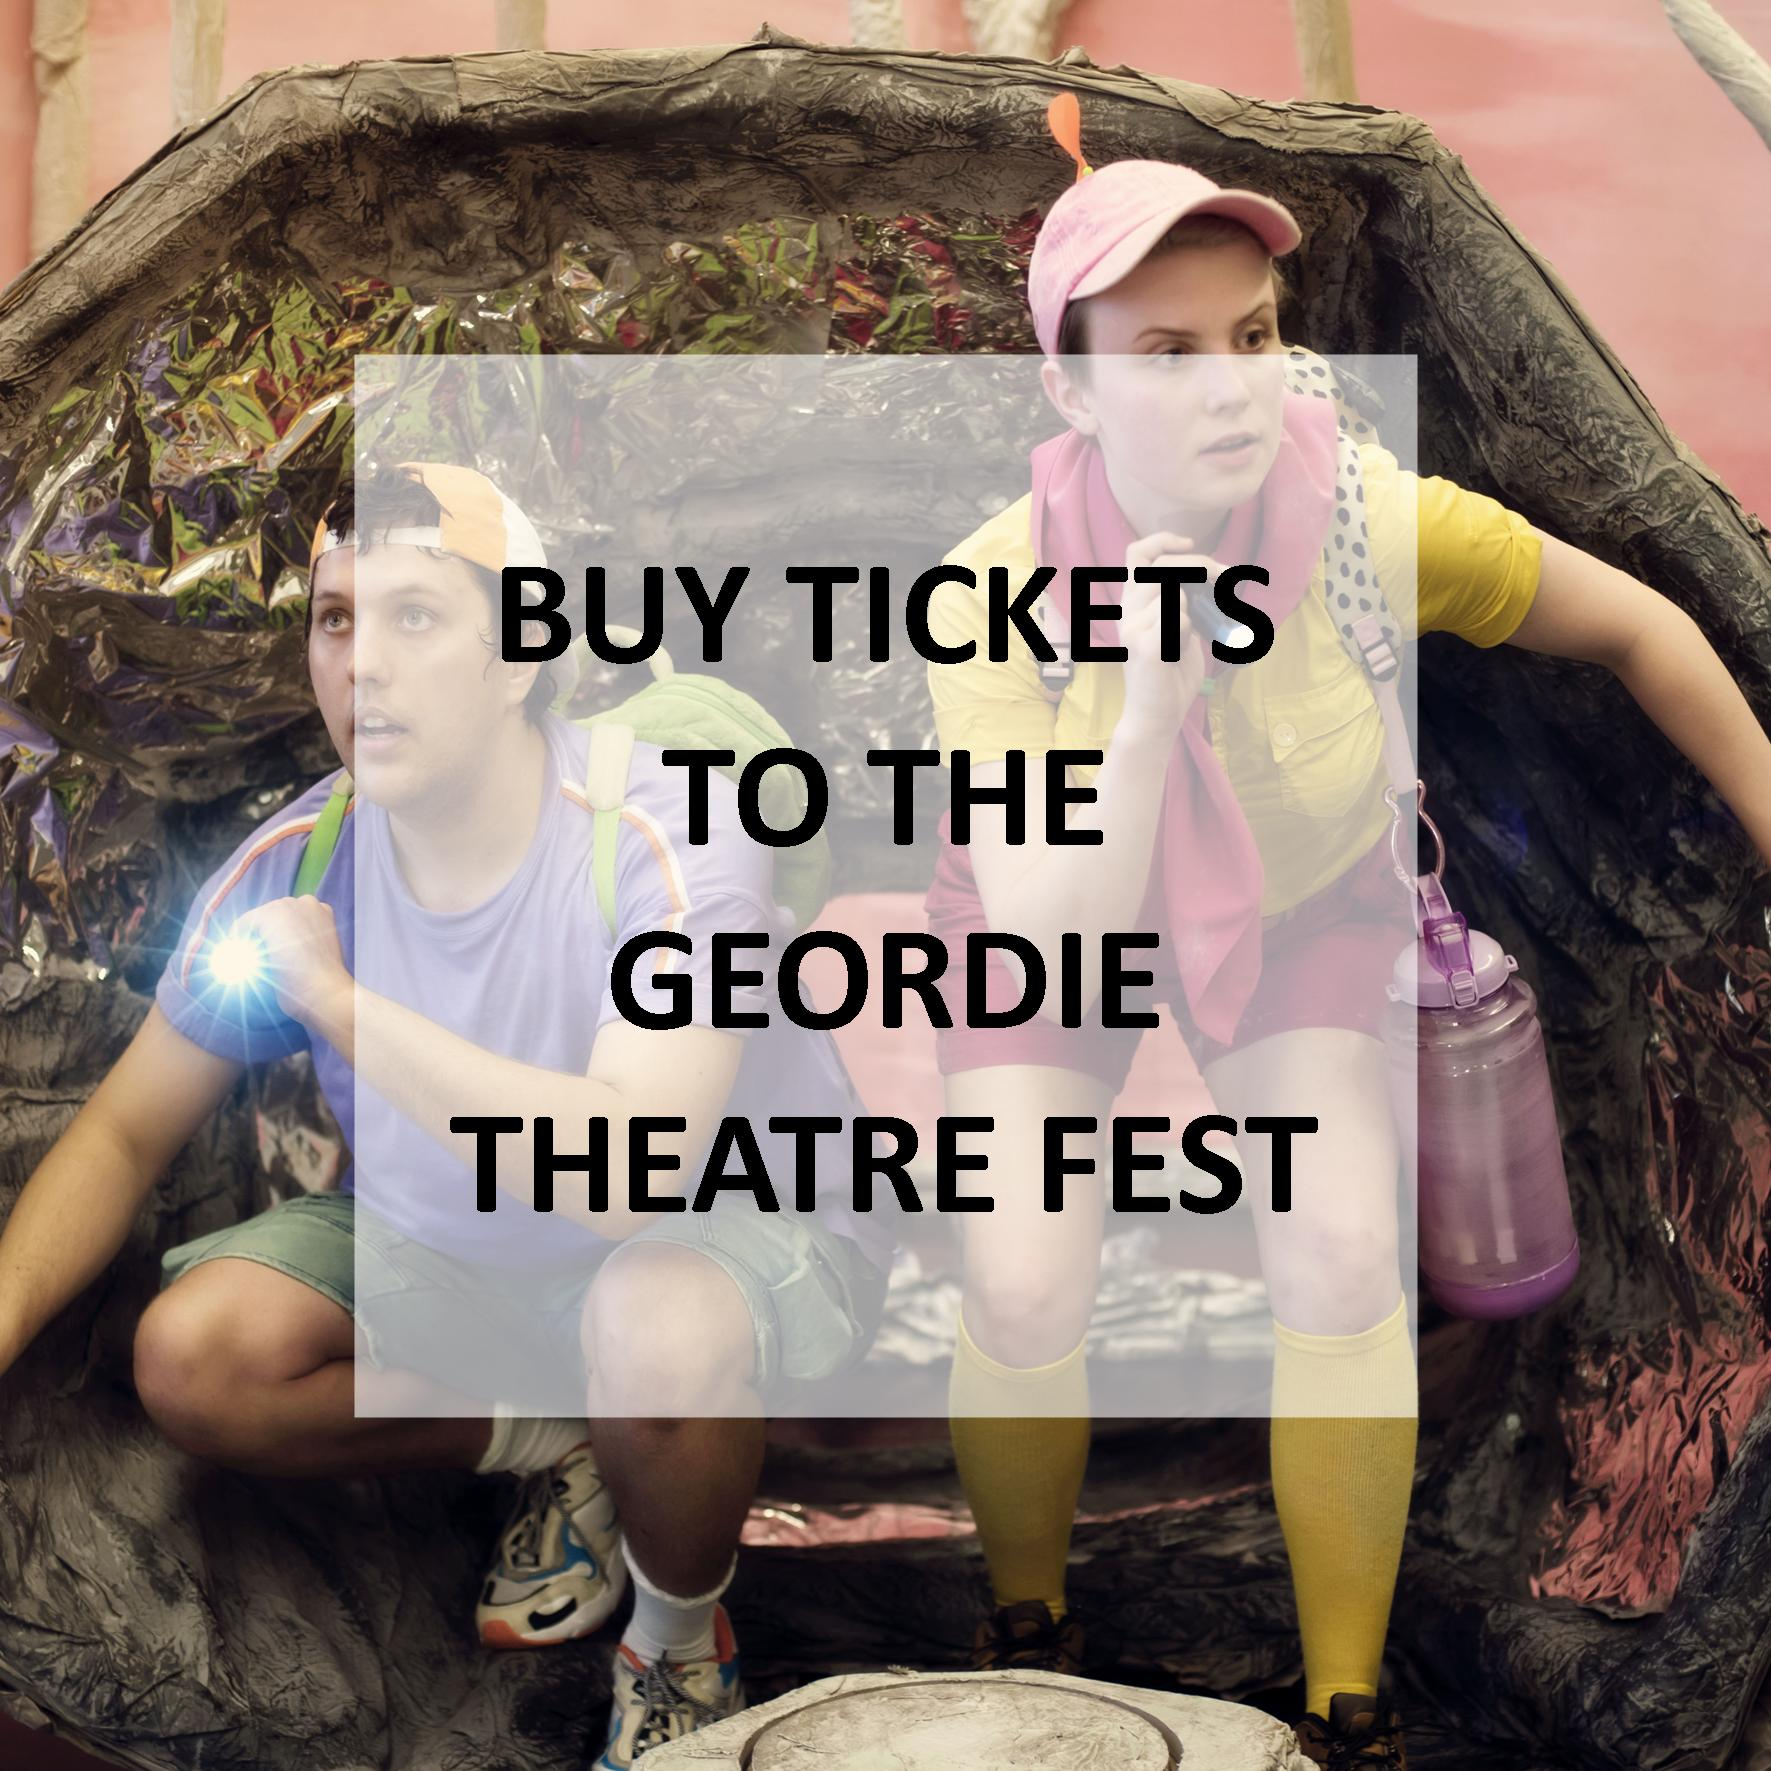 Buy tickets to the Geordie Theatre Fest